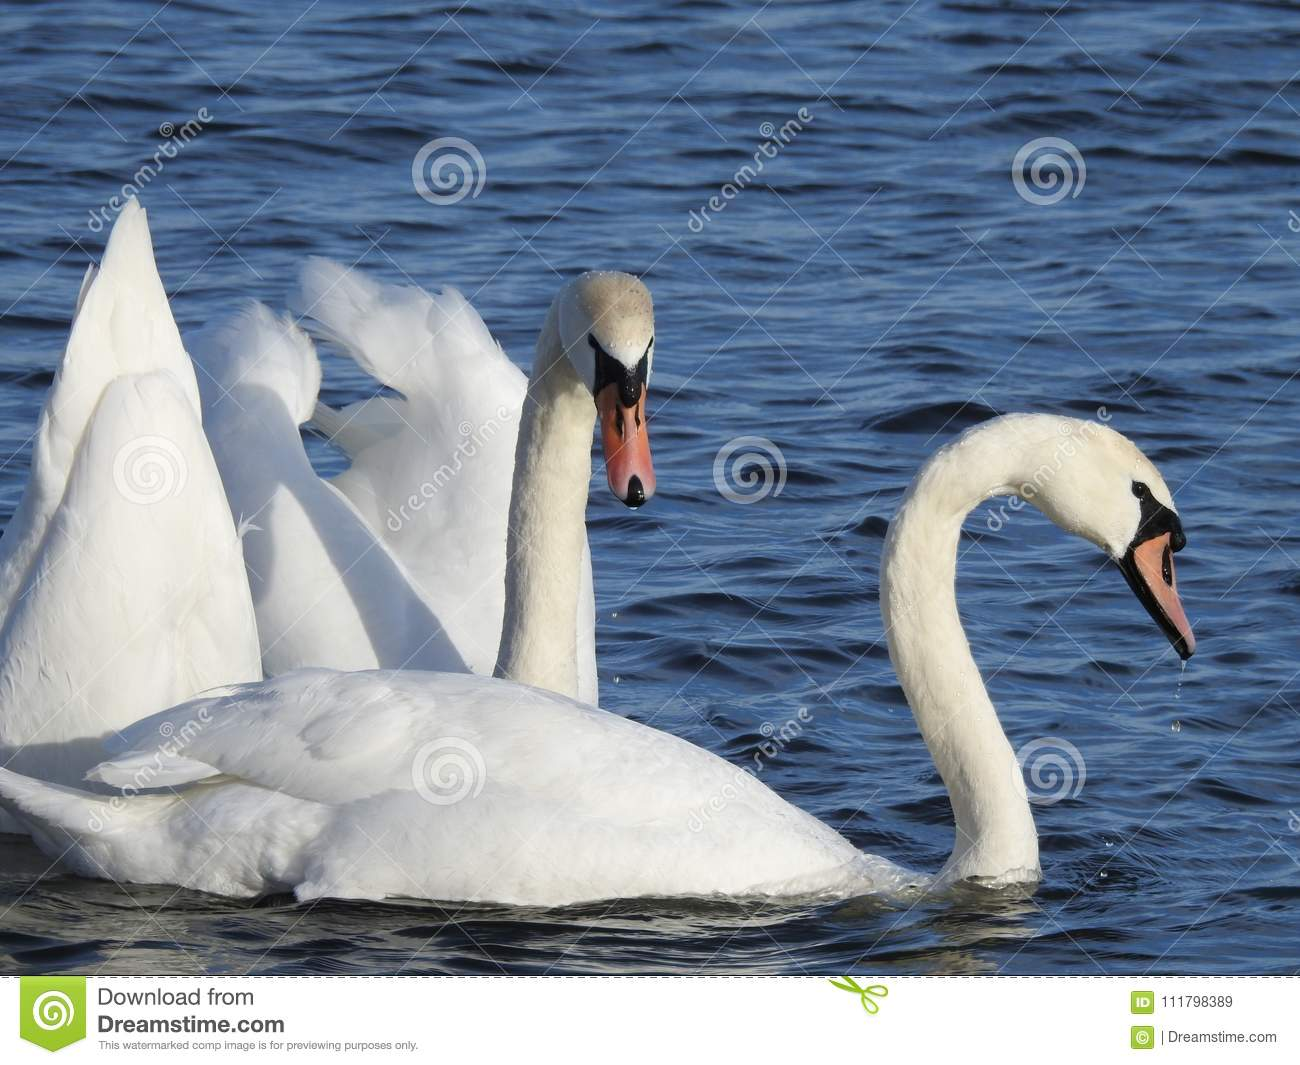 Close up of swans in the wild with blue water in the background